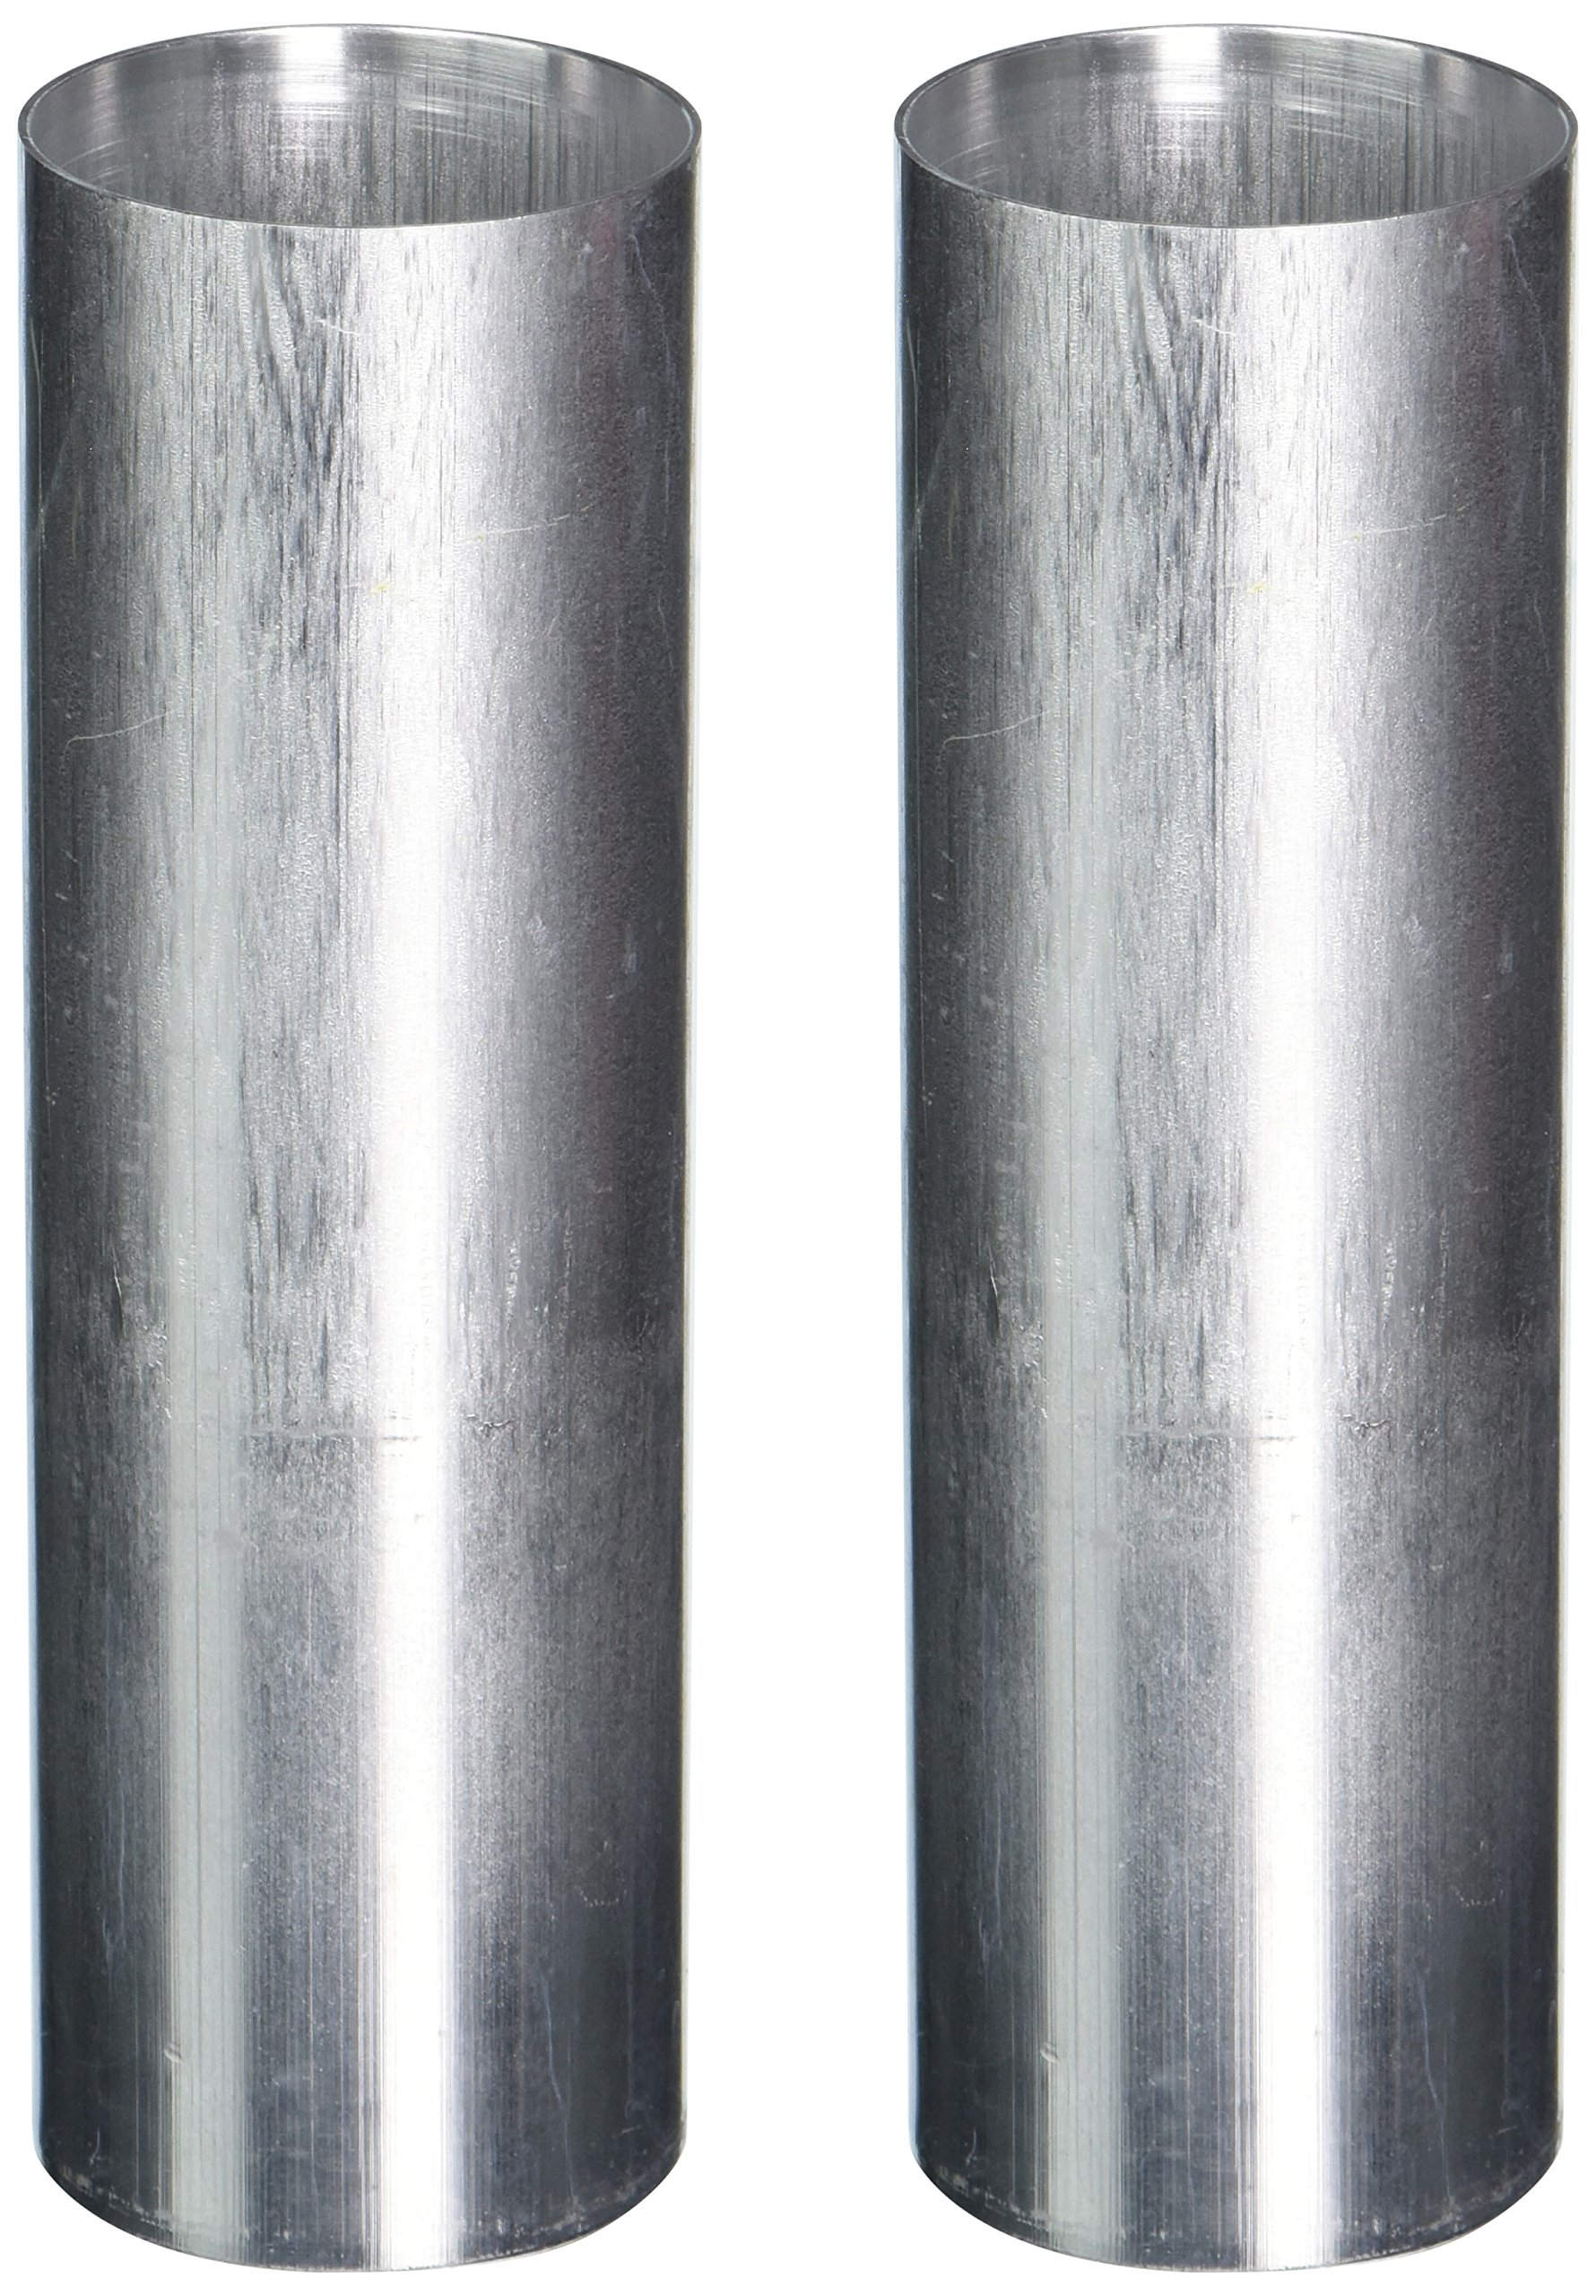 Candlewic 2Pk 2 X 6.5 inch Round Aluminum One Piece Candle Molds